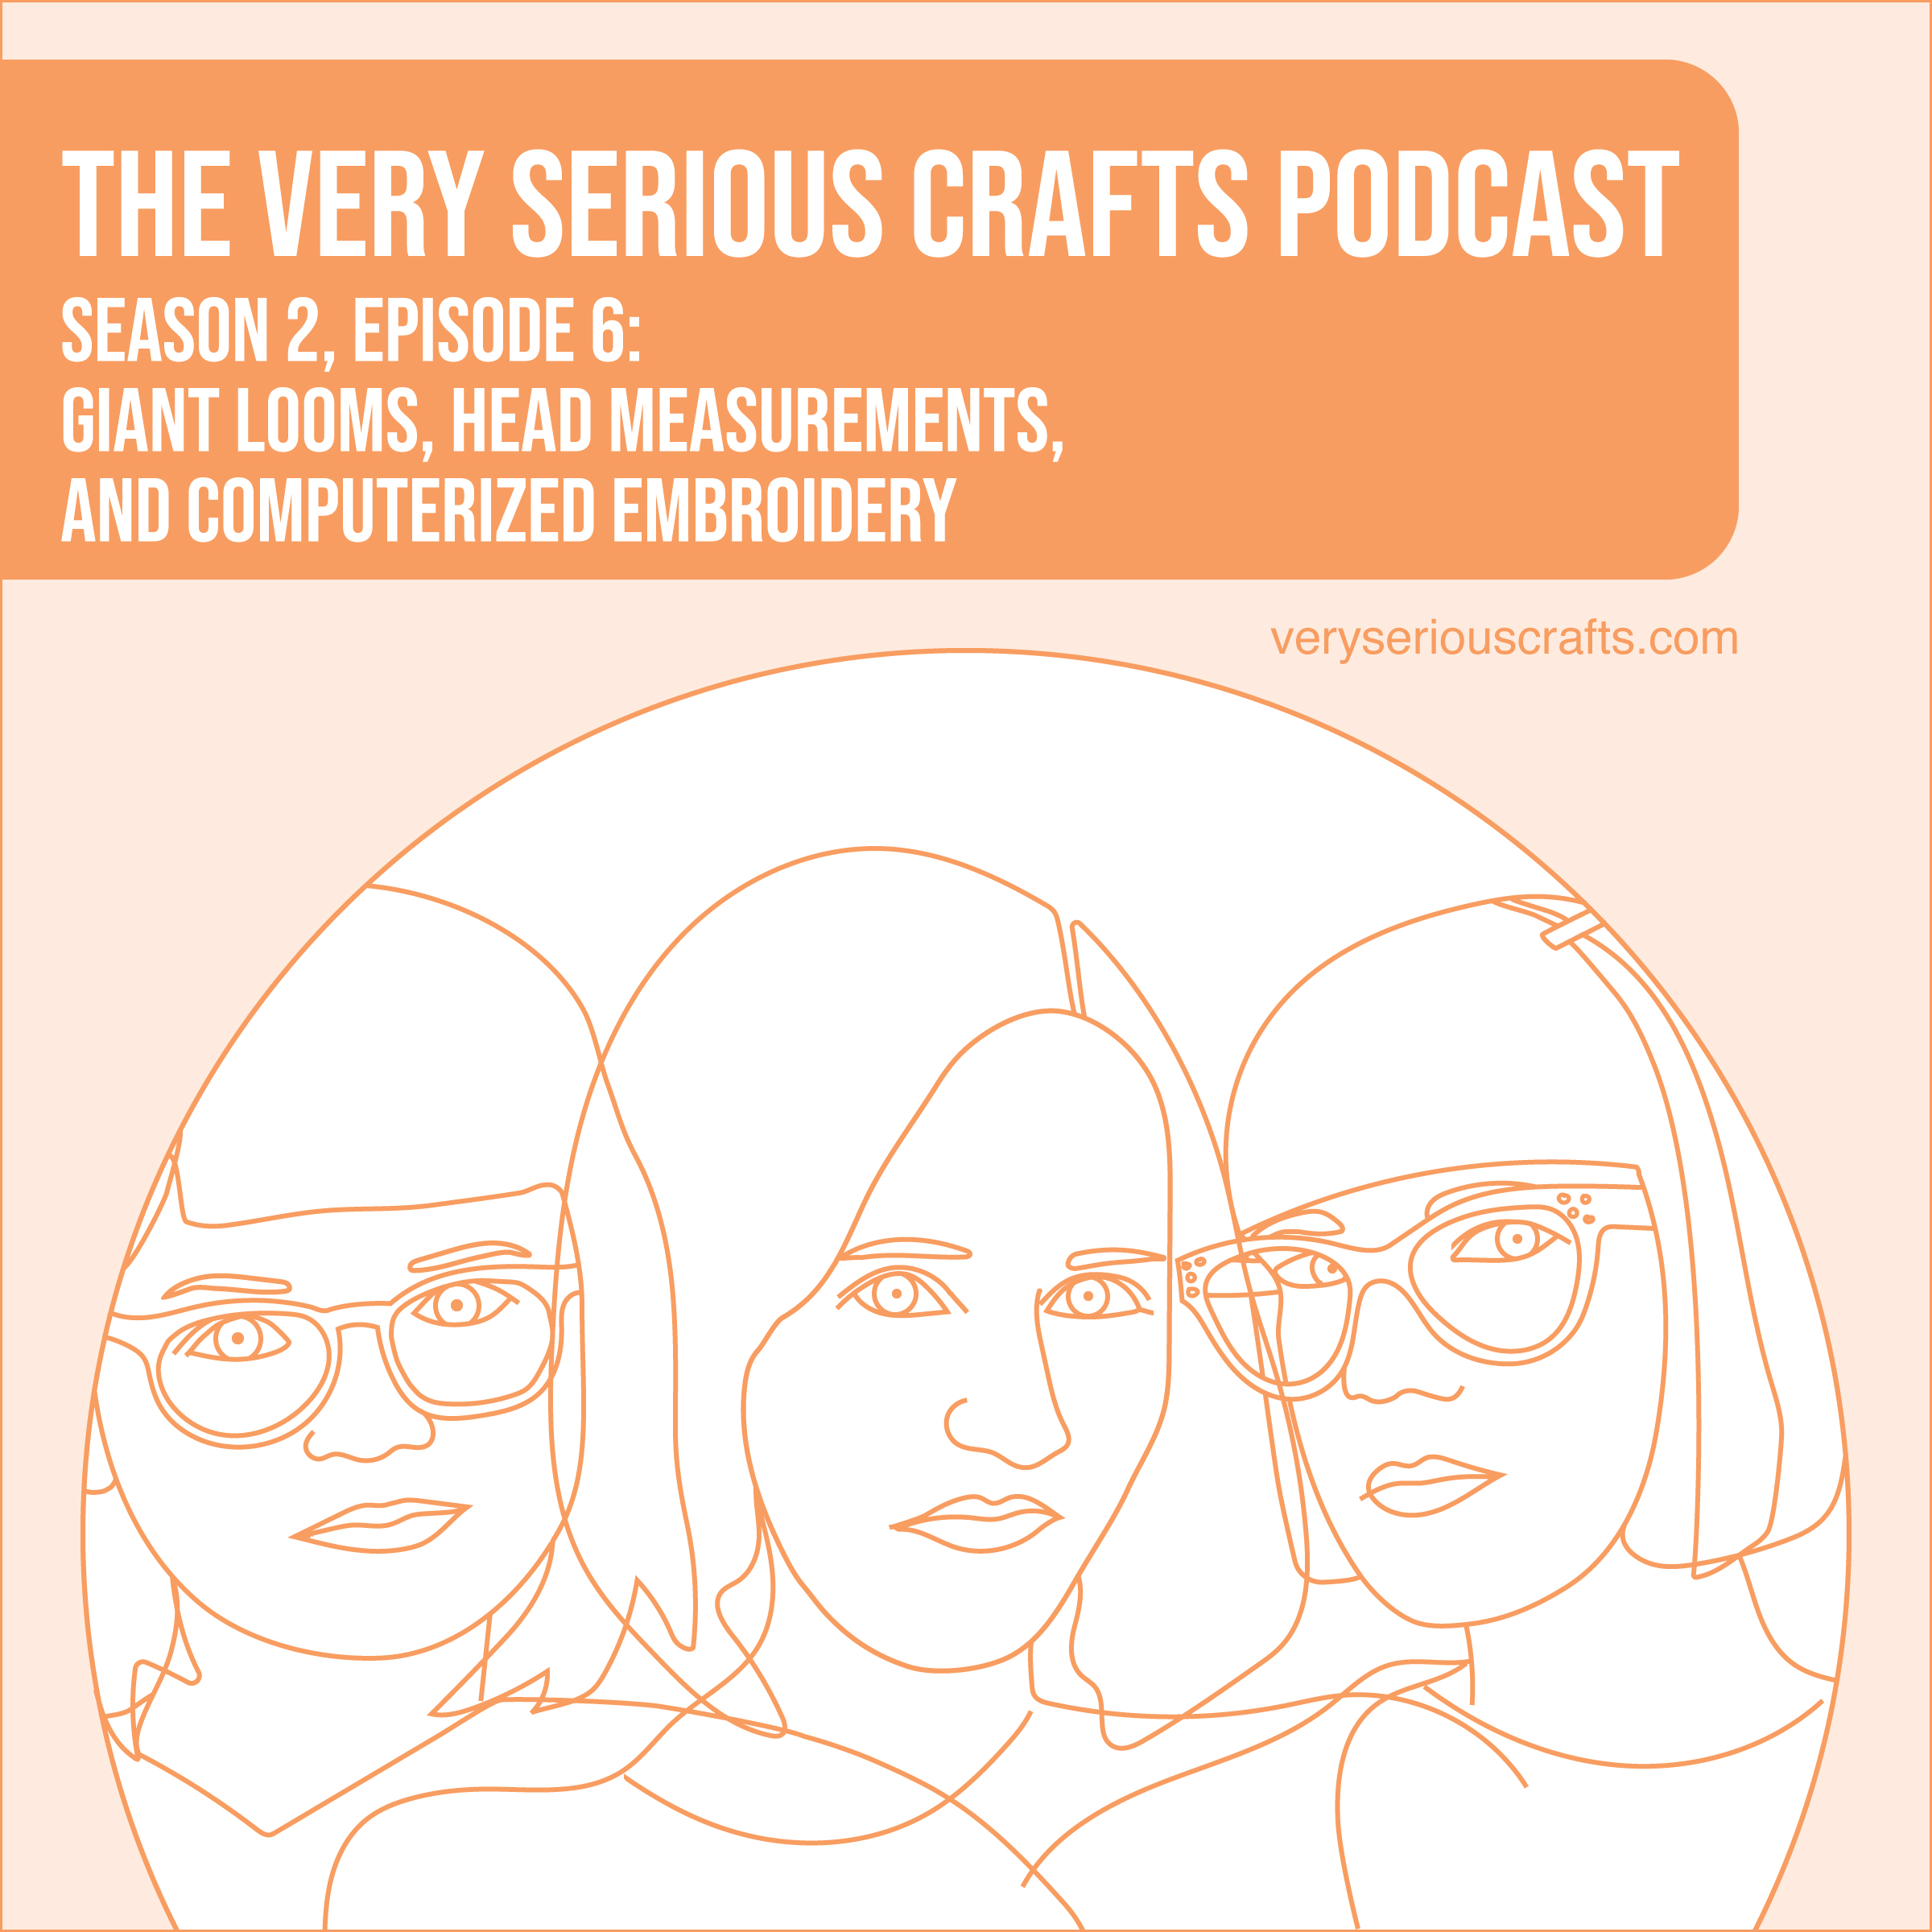 The Very Serious Crafts Podcast, Season 2: Episode 6 – Giant Looms, Head Measurements, and Computerized Embroidery